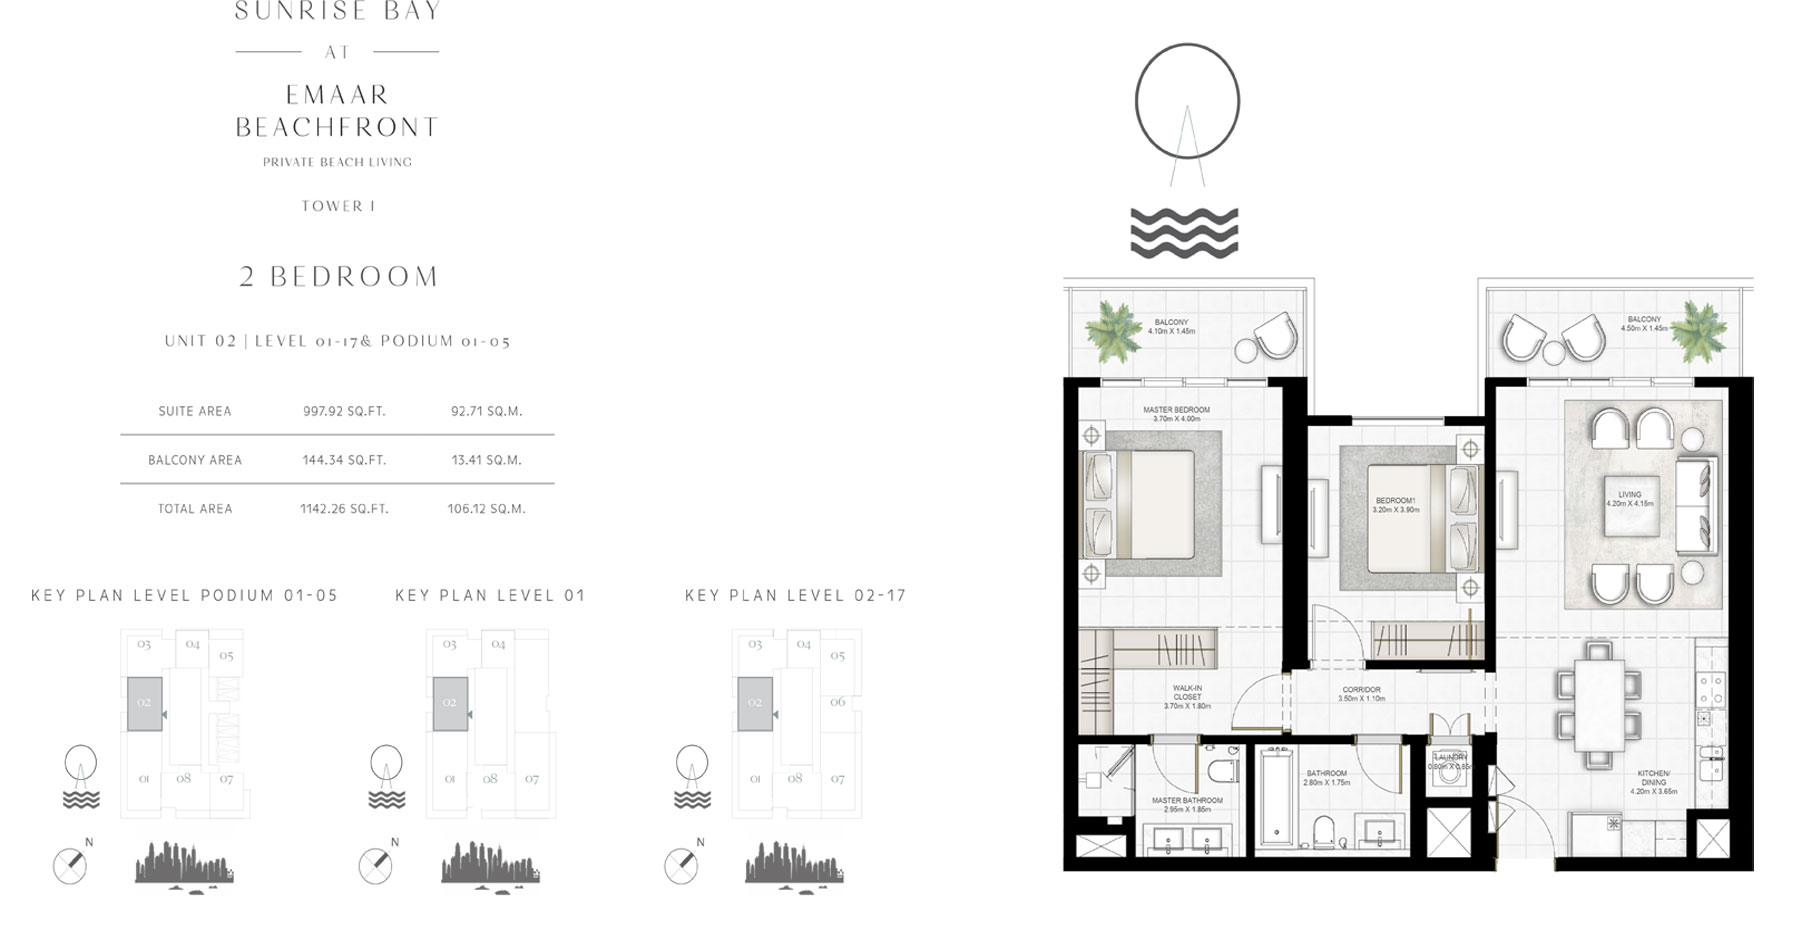 Sunsrise Bay By Emaar - Floor Plan